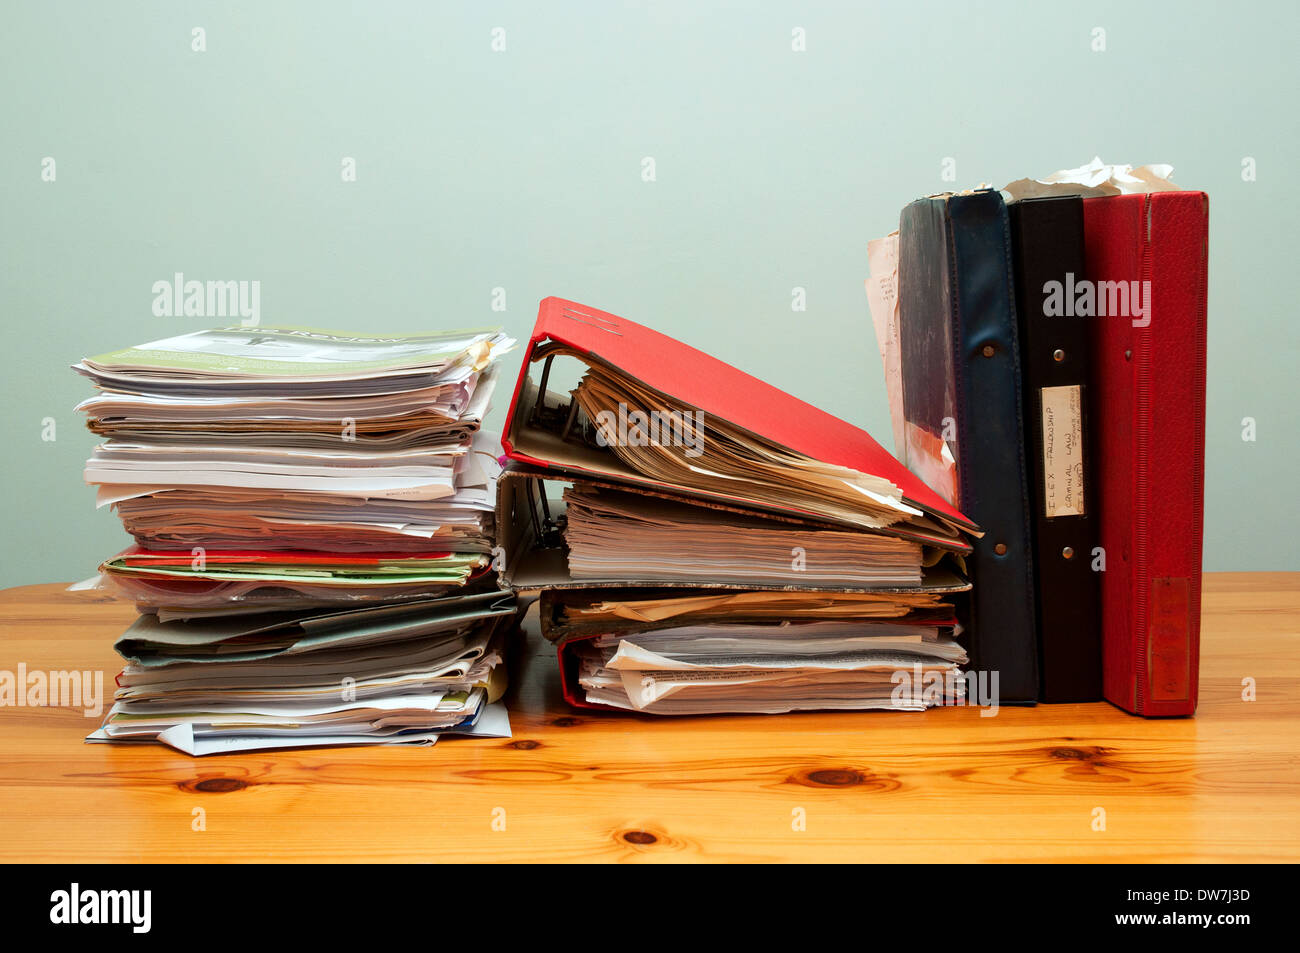 a pile of office files and paperwork on a desk - Stock Image